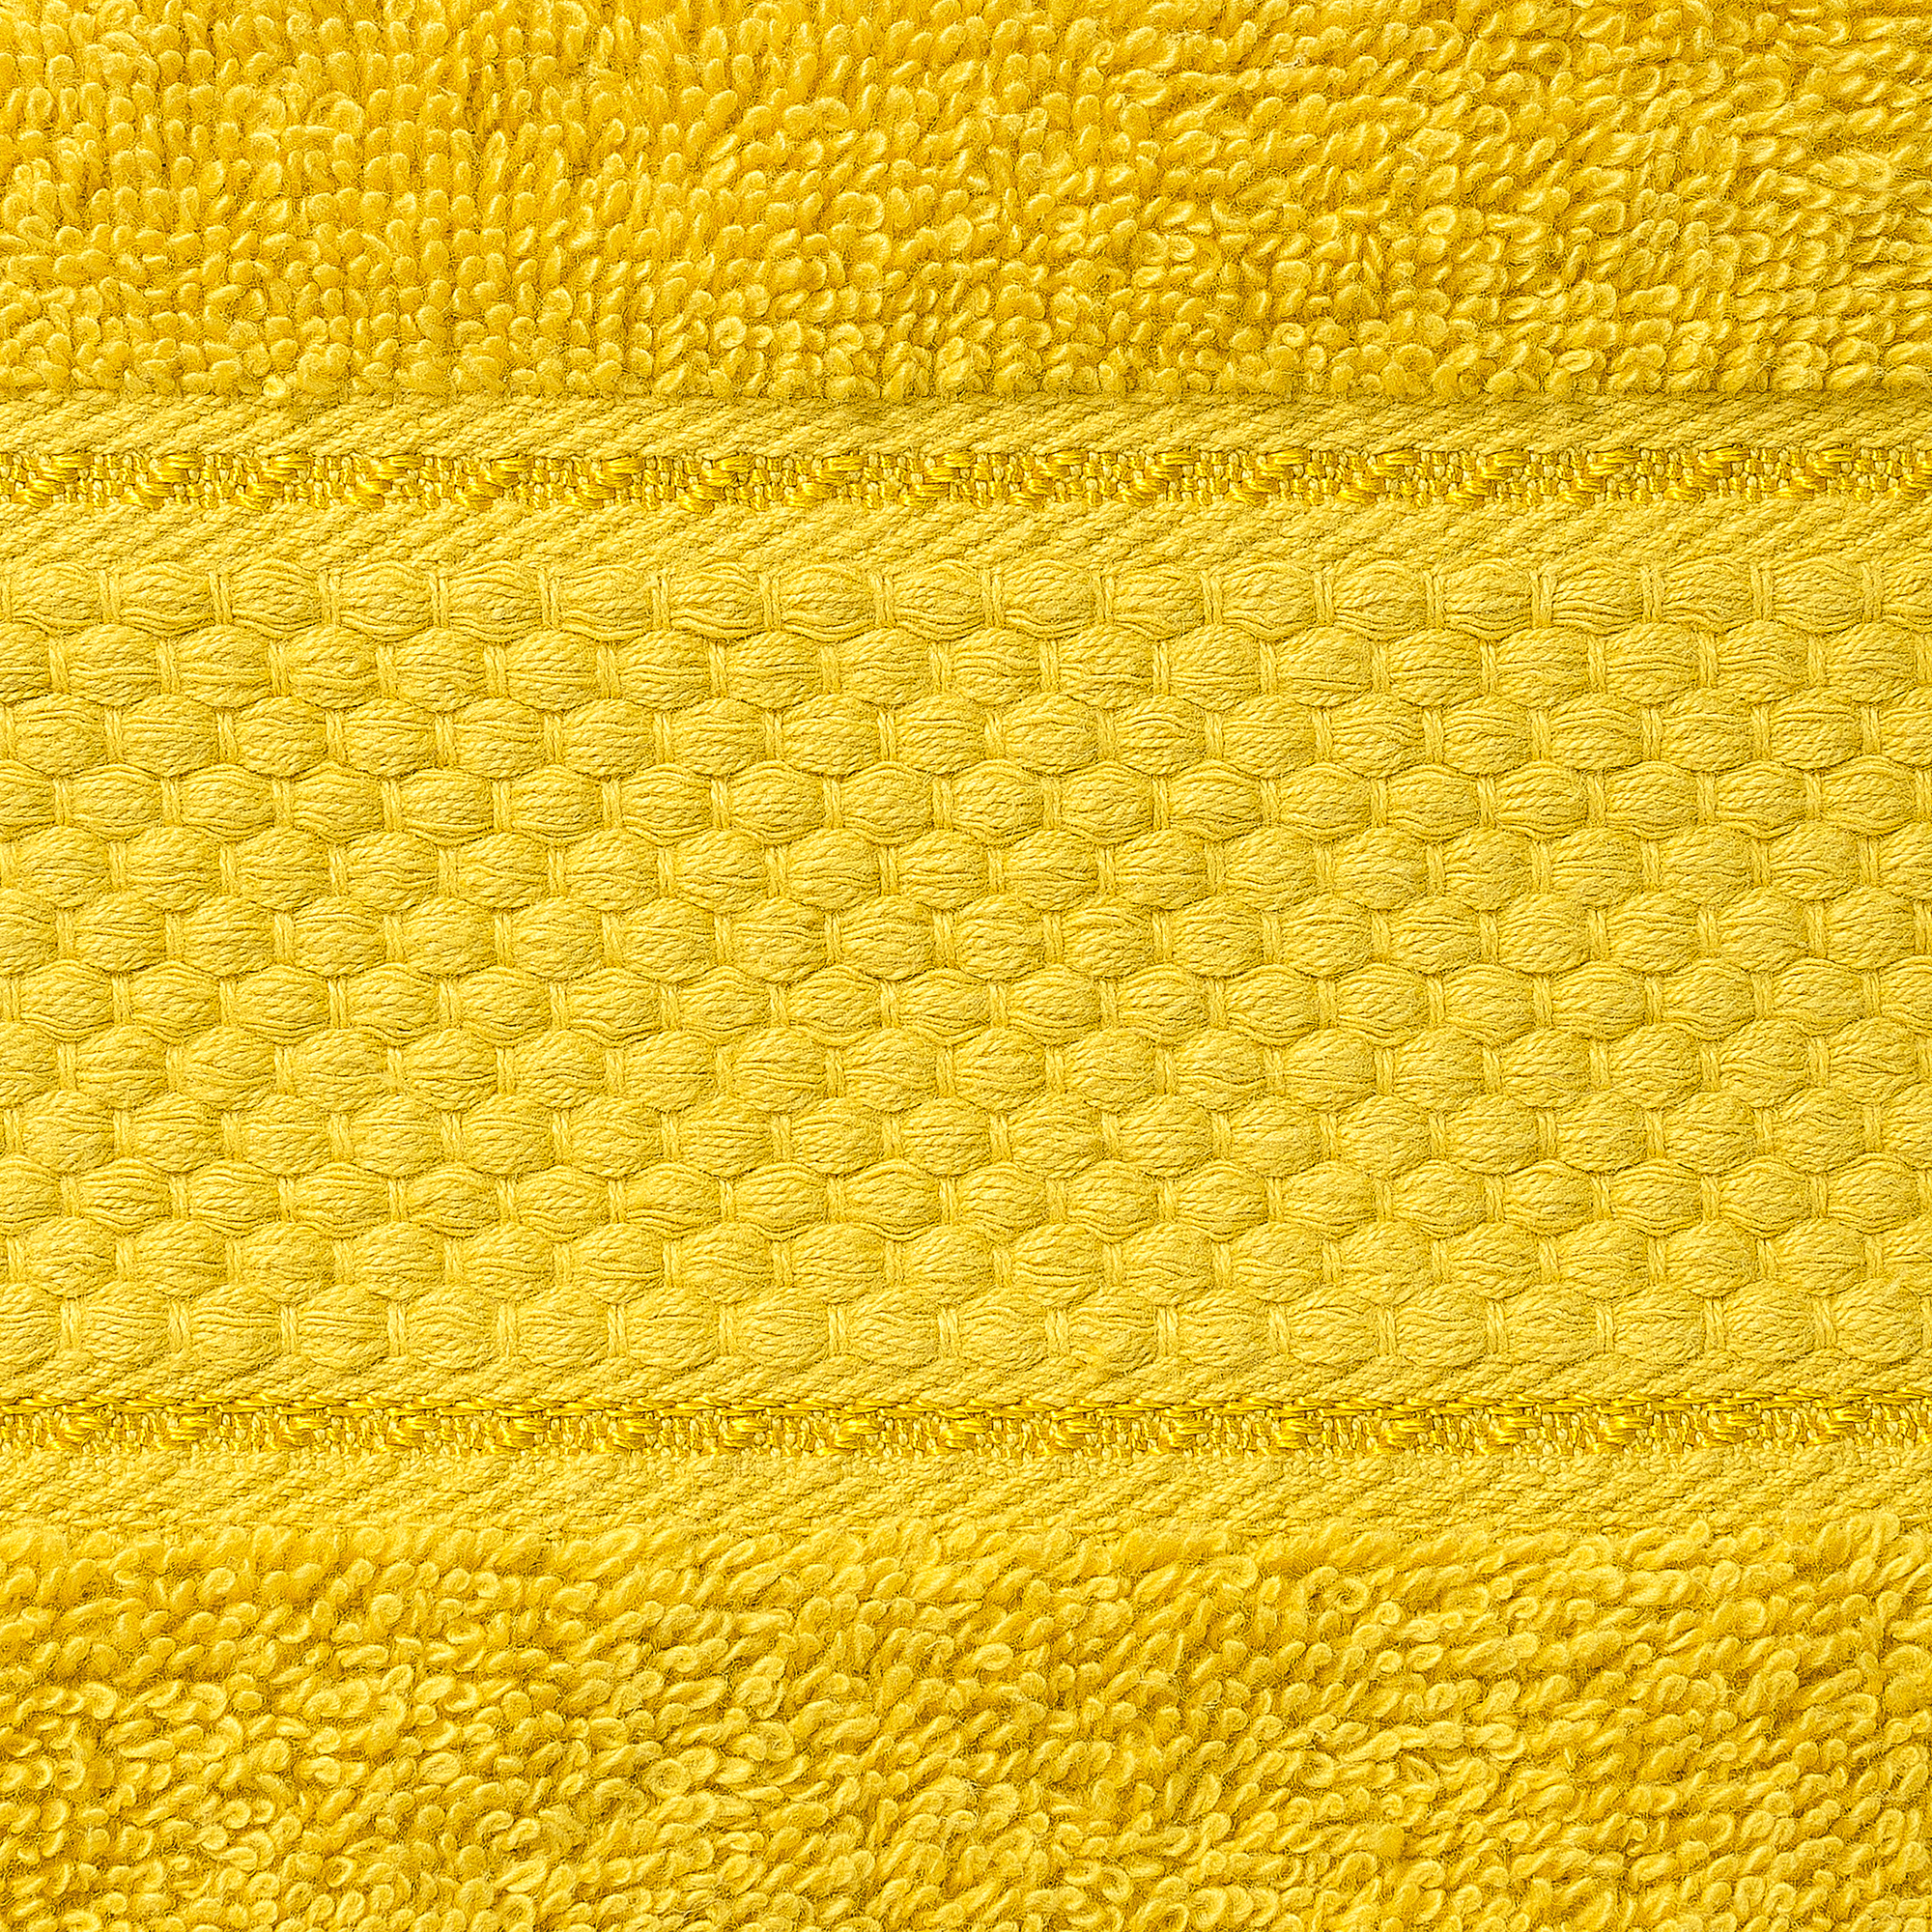 2 Pcs 100 % Cotton Premium Bath Sheet Towel Bale Set Mustard Plain